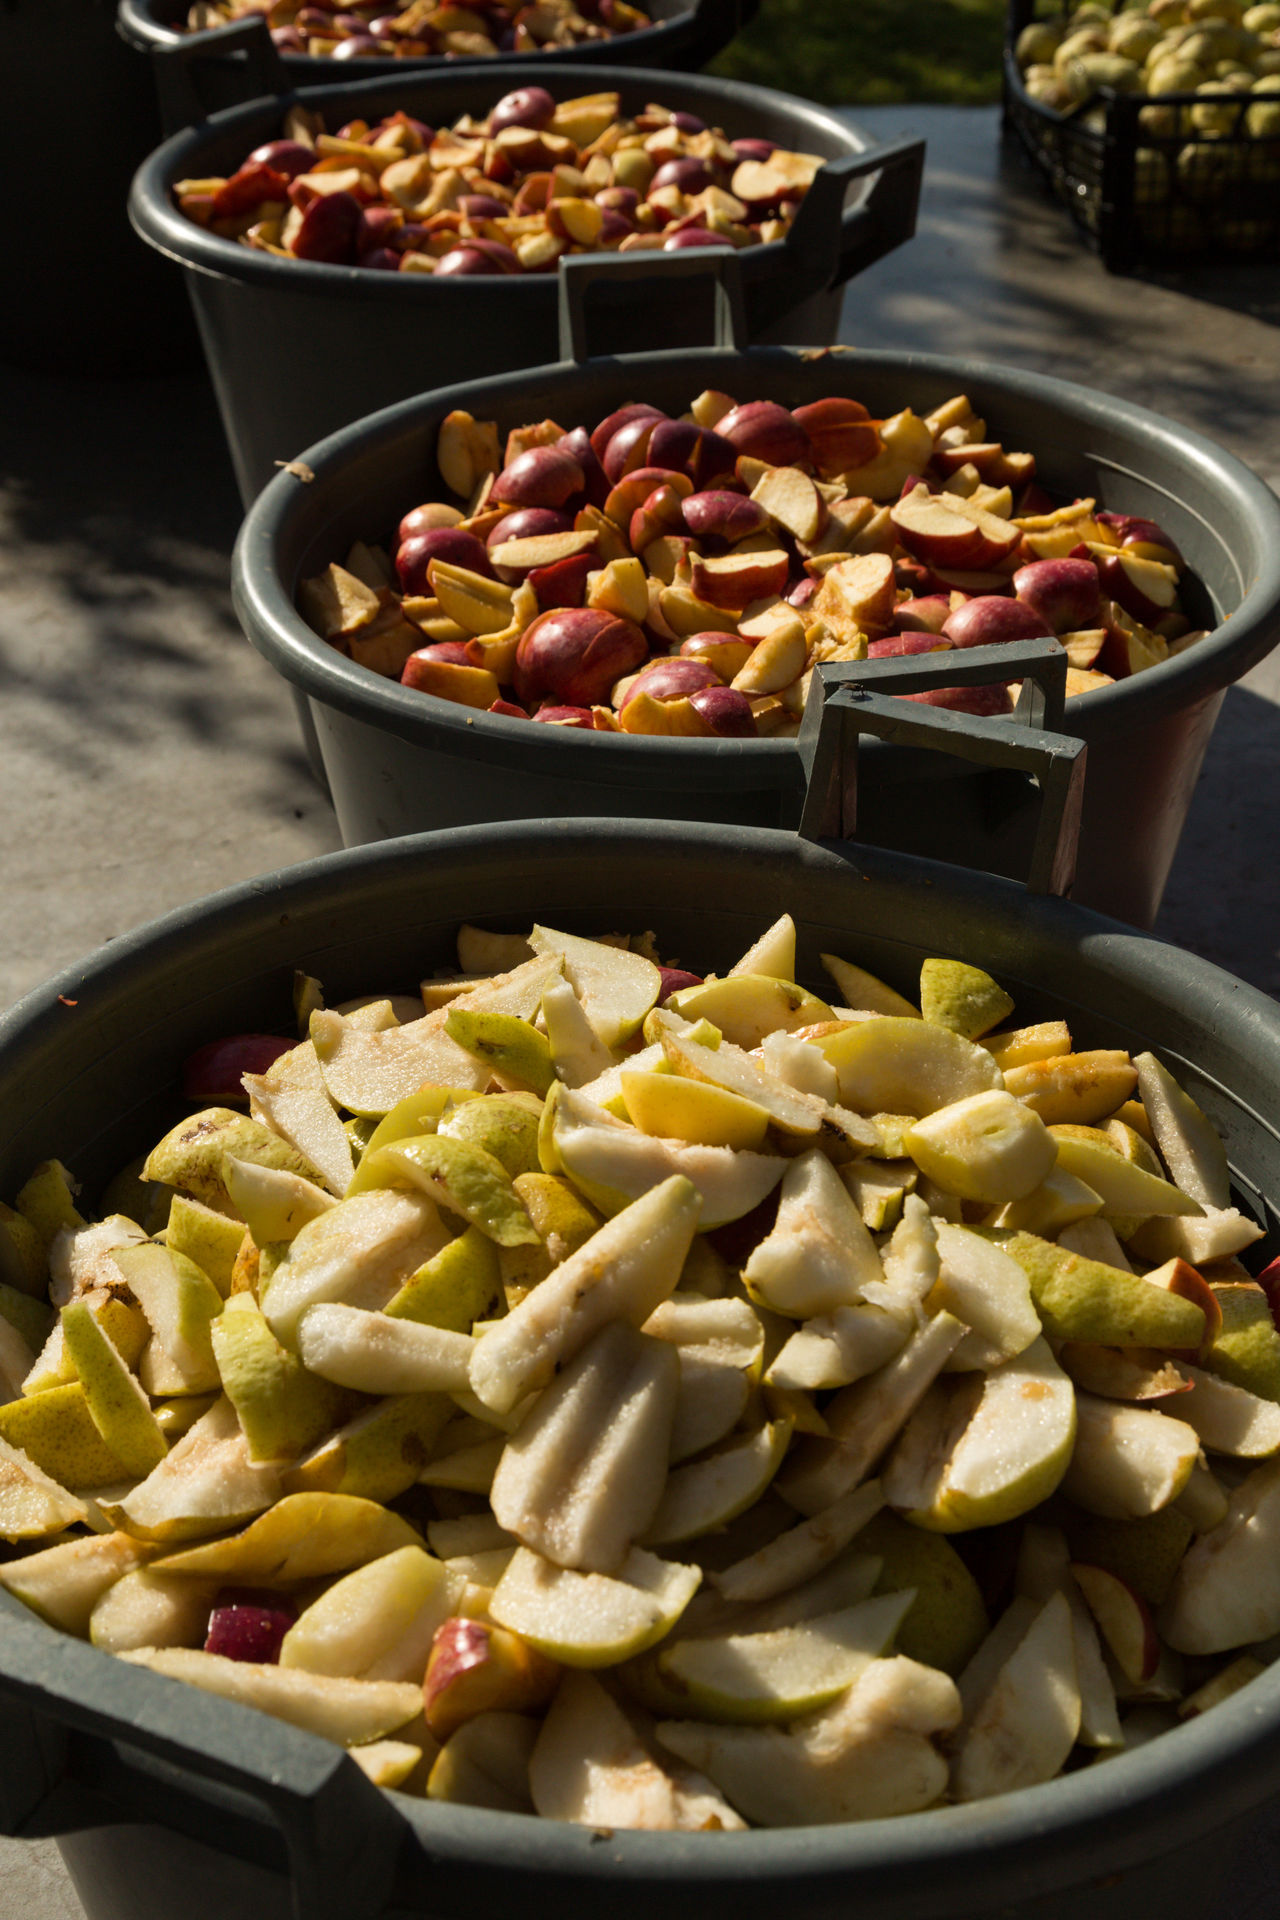 containers of sliced apples and pears for making molasses Apples Bounty Buckets Fruits Kazan Making Molasses Pears Pekmez Pekmez Yapimi Pots Prepared Raw Raw Food Sliced Sliced Fruits Turkey